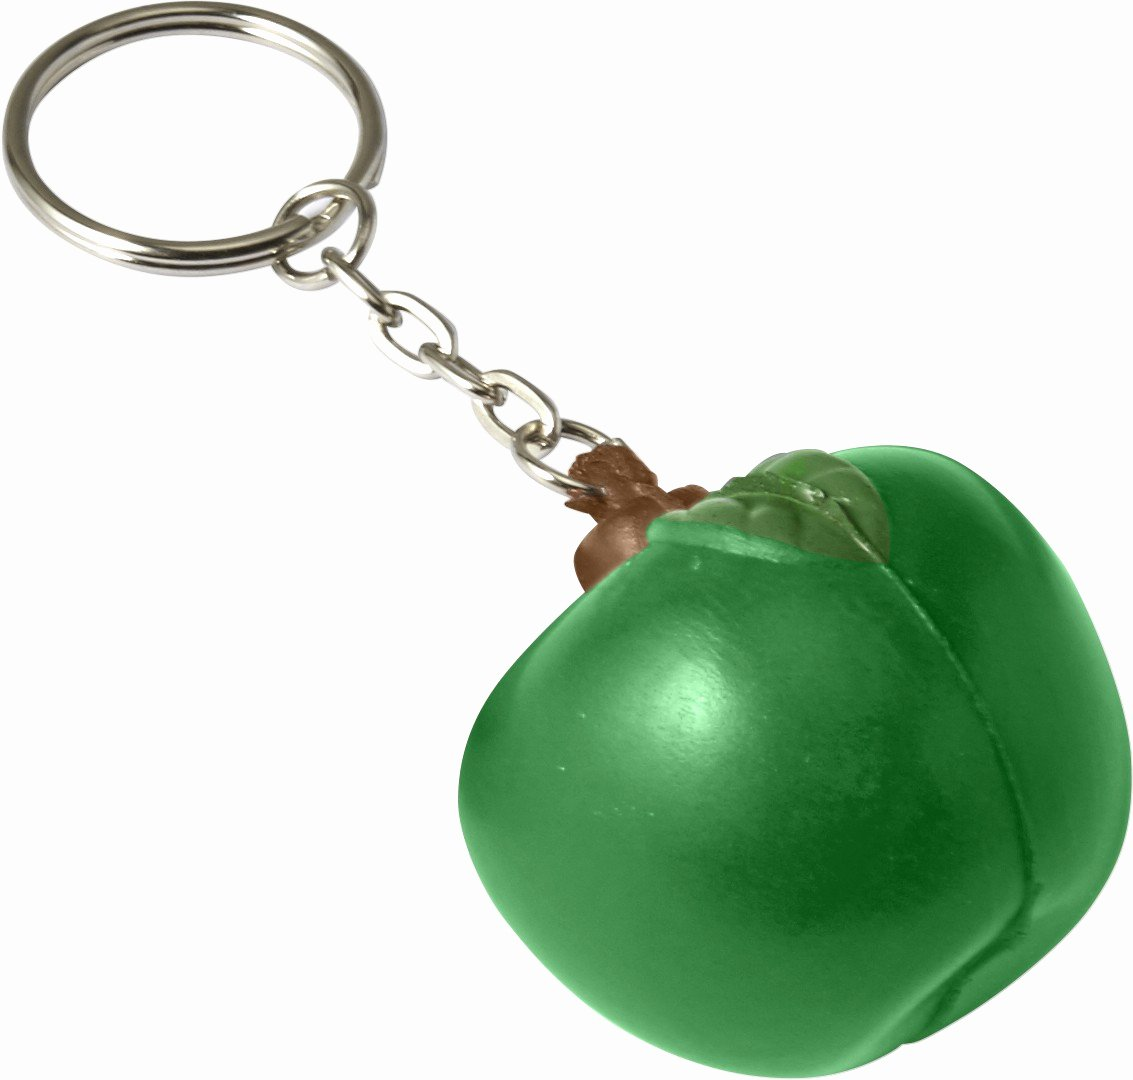 Key Shaped Key Holder Awesome Key Holder Fruit Shaped Green Plastic Keychain